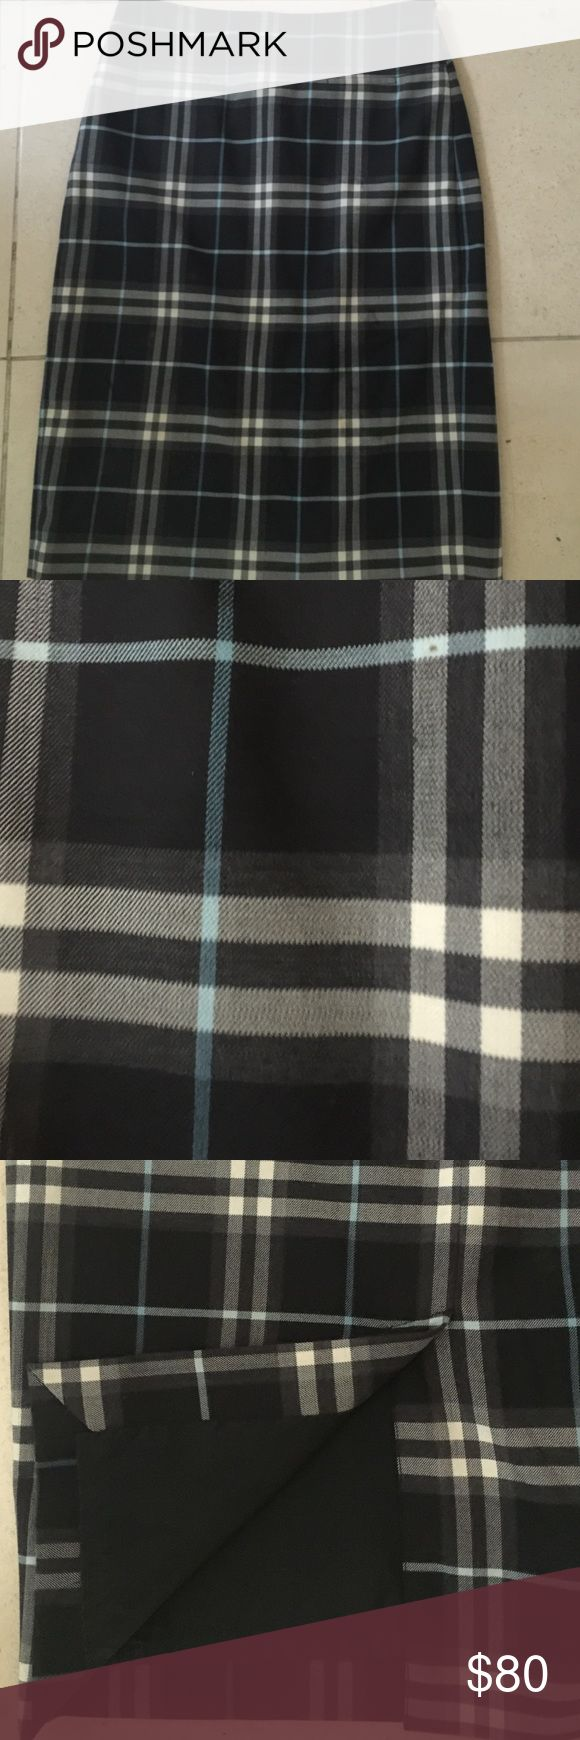 Burberry plaid black, white and blue pencil skirt. Burberry plaid black, white and blue pencil skirt. Size 4. Lined. Like new condition. Burberry Skirts Pencil